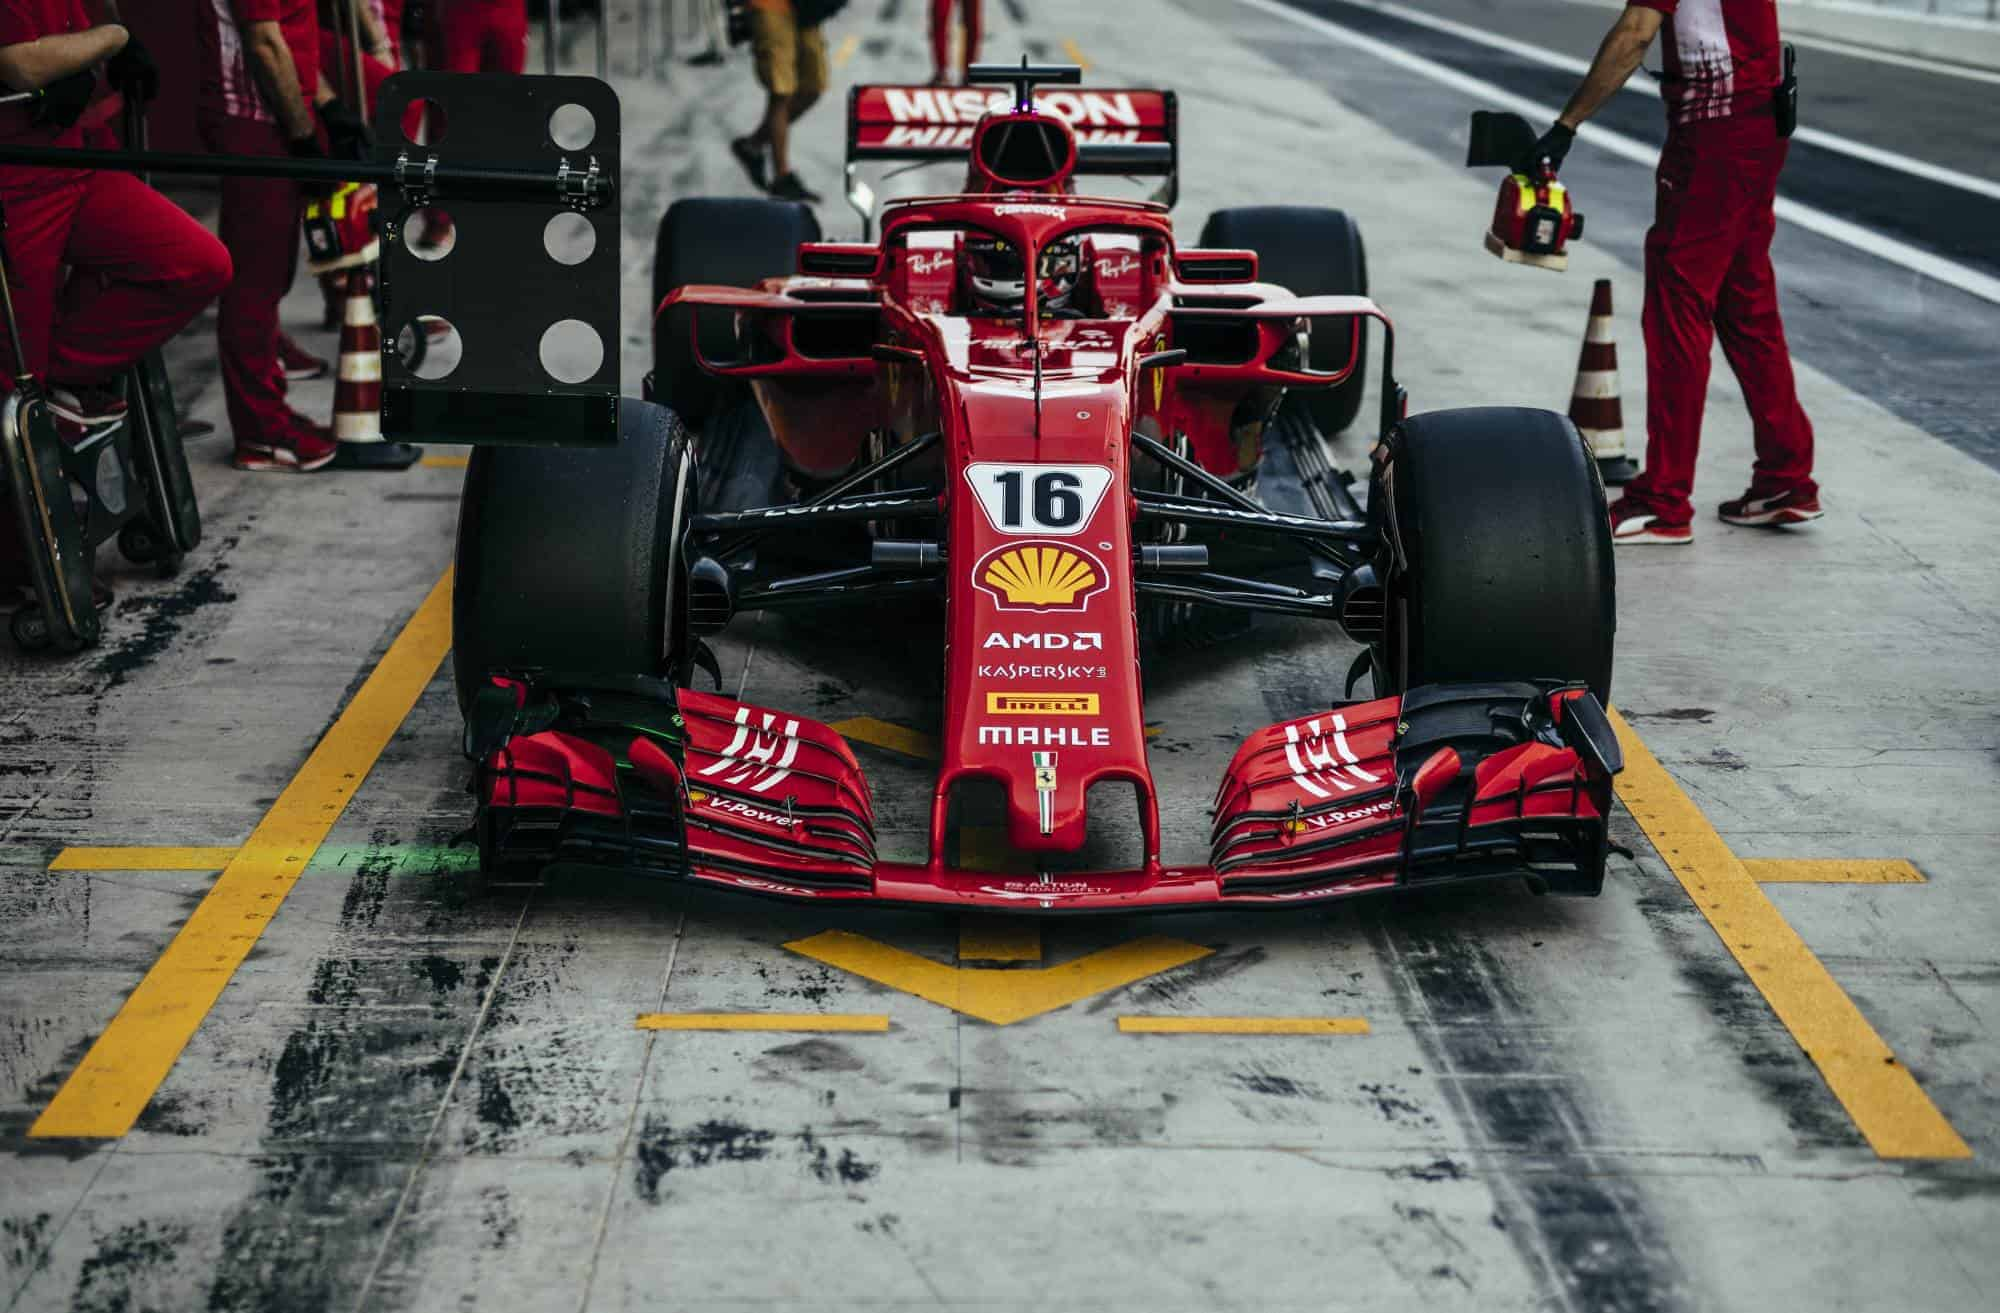 Charles Leclerc Abu Dhabi F1 2019 test Photo Ferrari